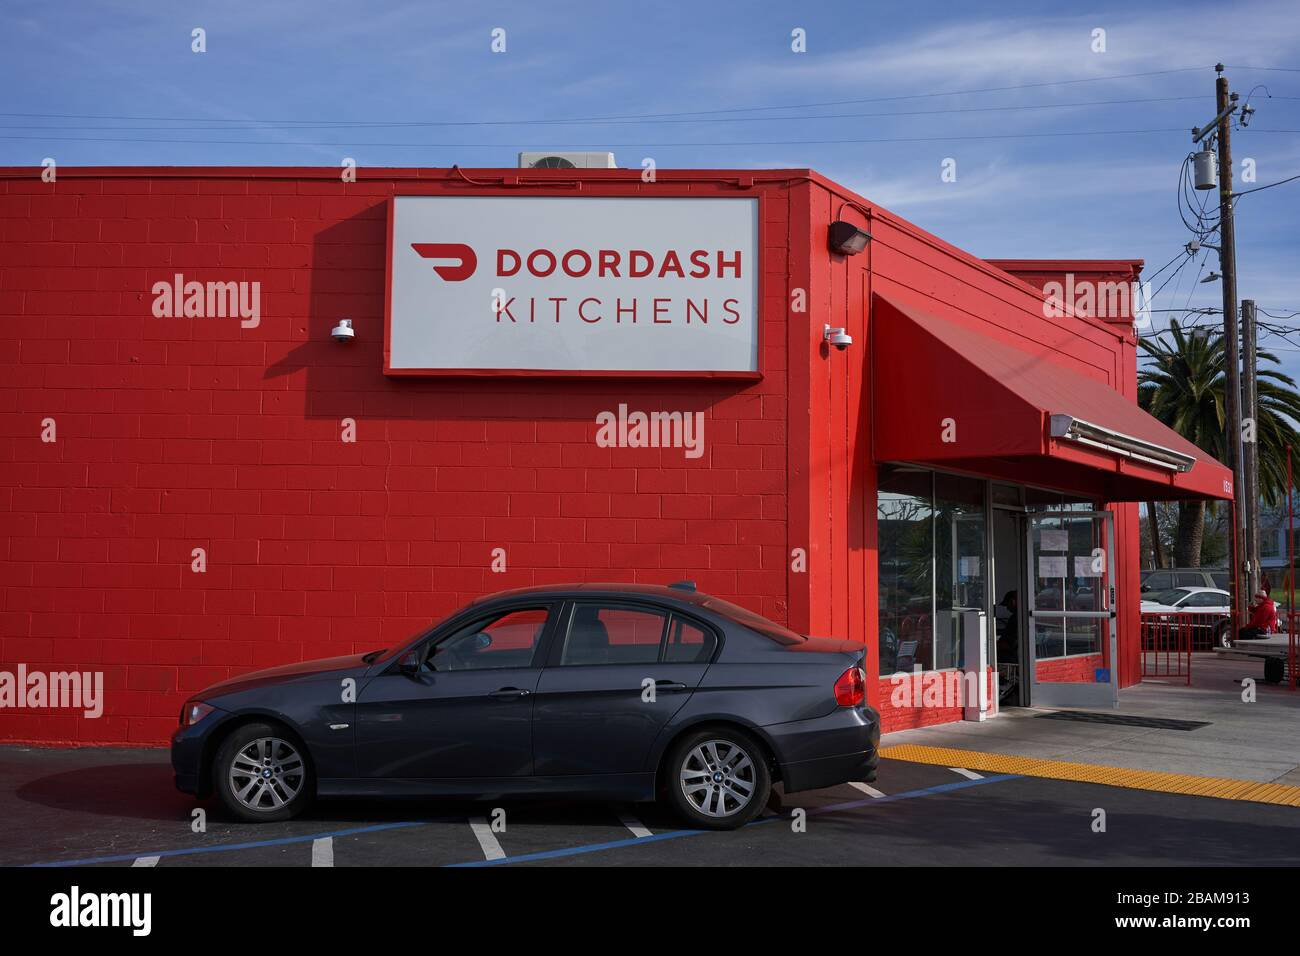 DoorDash Kitchens location exterior. It provides customized kitchen space for restaurants offering delivery and pickup services through DoorDash app. Stock Photo